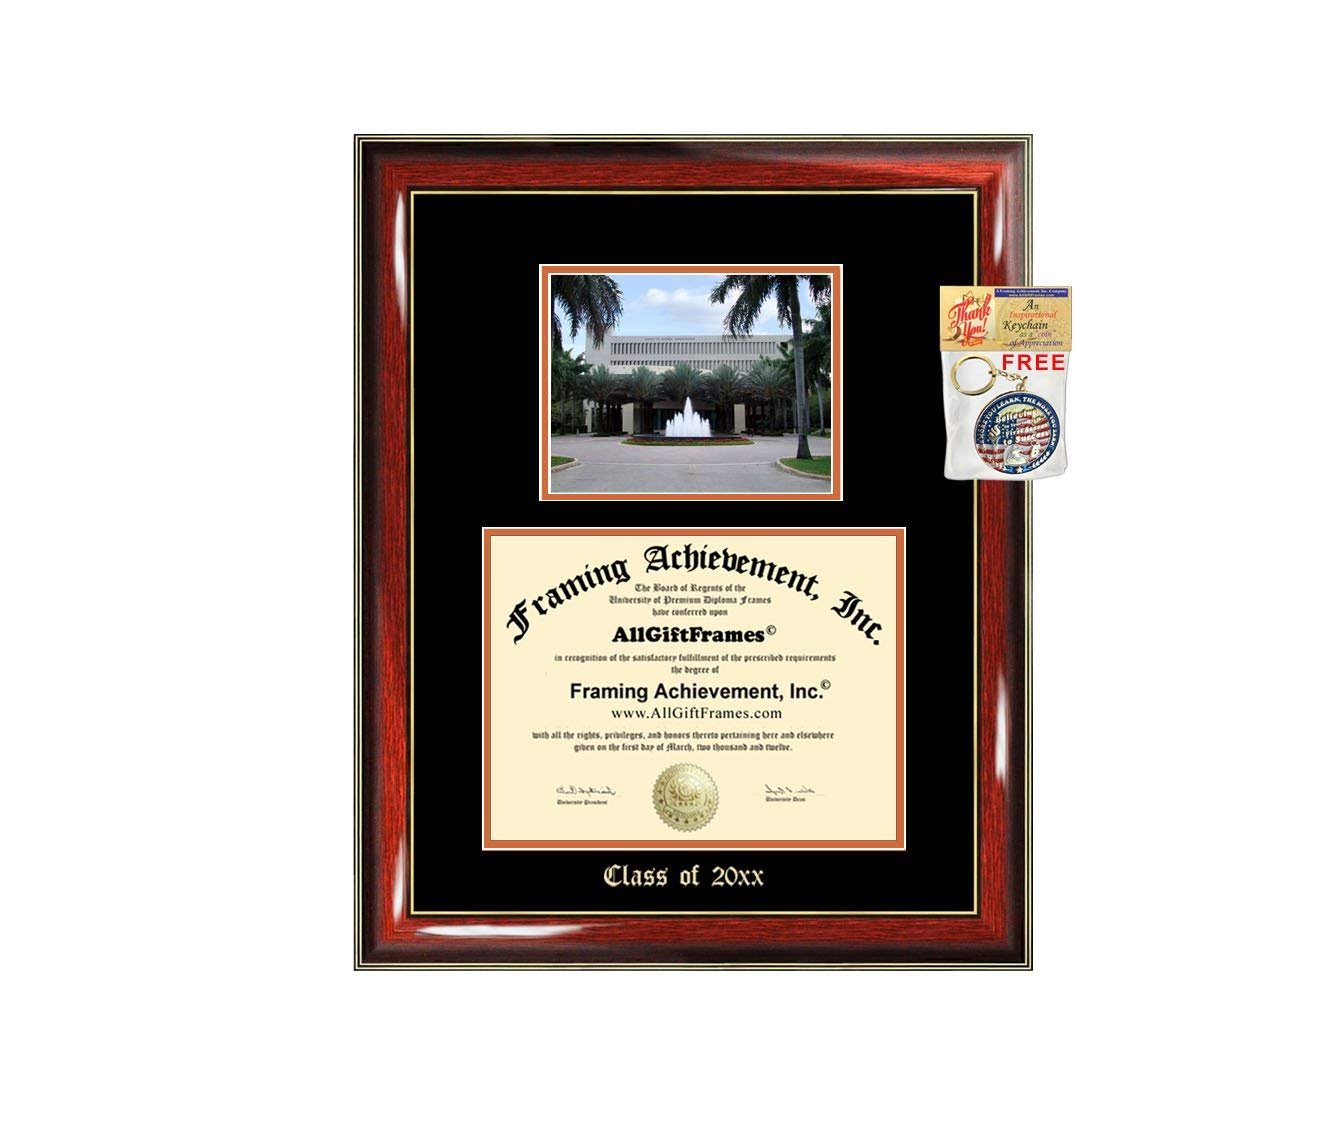 Diploma Frame Big University of Miami Graduation Gift Case Embossed Picture Frames Engraving Degree Graduate Bachelor Masters MBA PHD Doctorate School